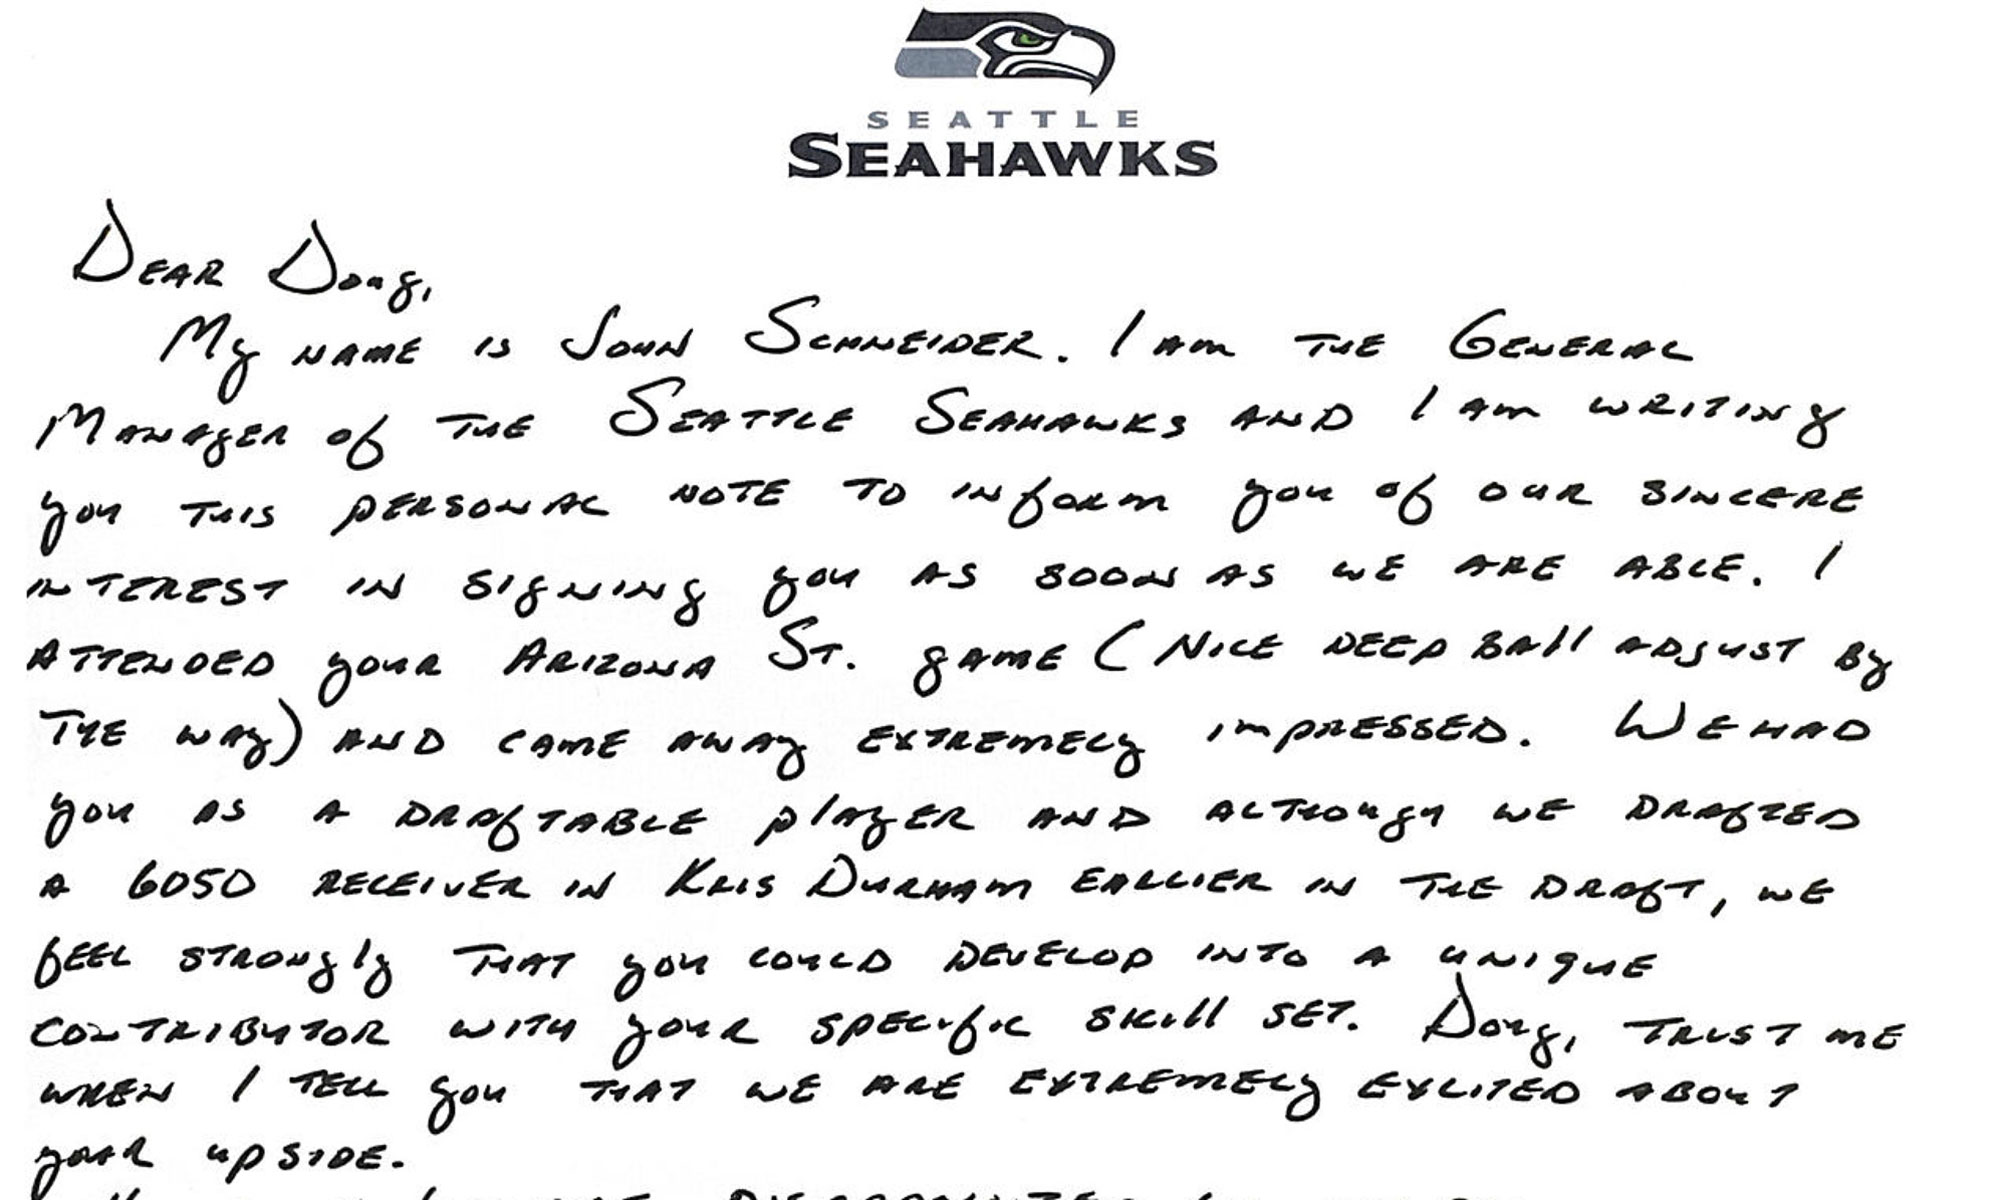 Schneider wrote Baldwin a two-page letter expressing the Seahawks' interest after Baldwin went undrafted in 2011.